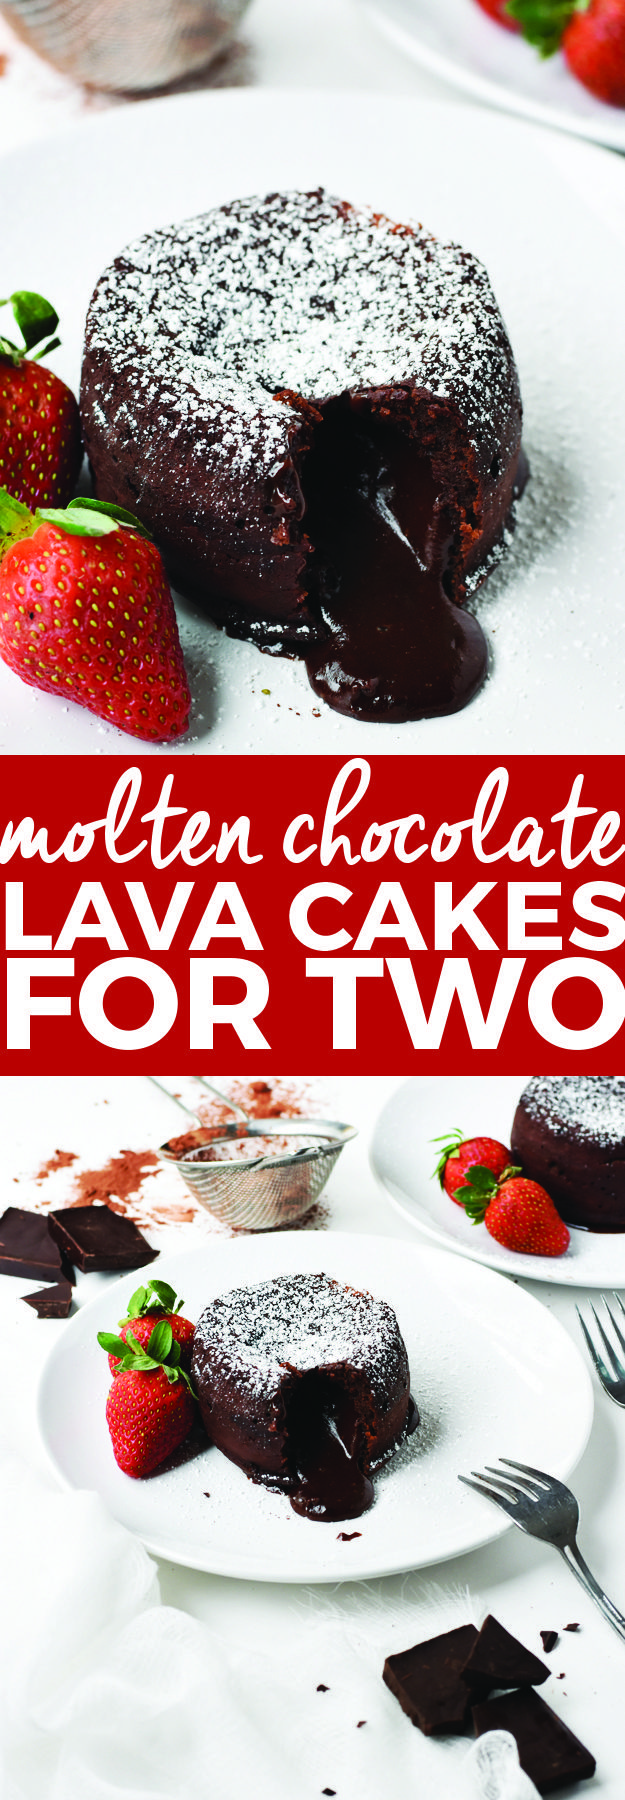 Molten Chocolate Lava Cakes for Two | Valentine's Day desserts, molten lava cakes, chocolate dessert recipes, small portion desserts, easy dessert recipes, homemade desserts || The Butter Half #moltenlavacake #chocolatedessert #easydesserts via @thebutterhalf